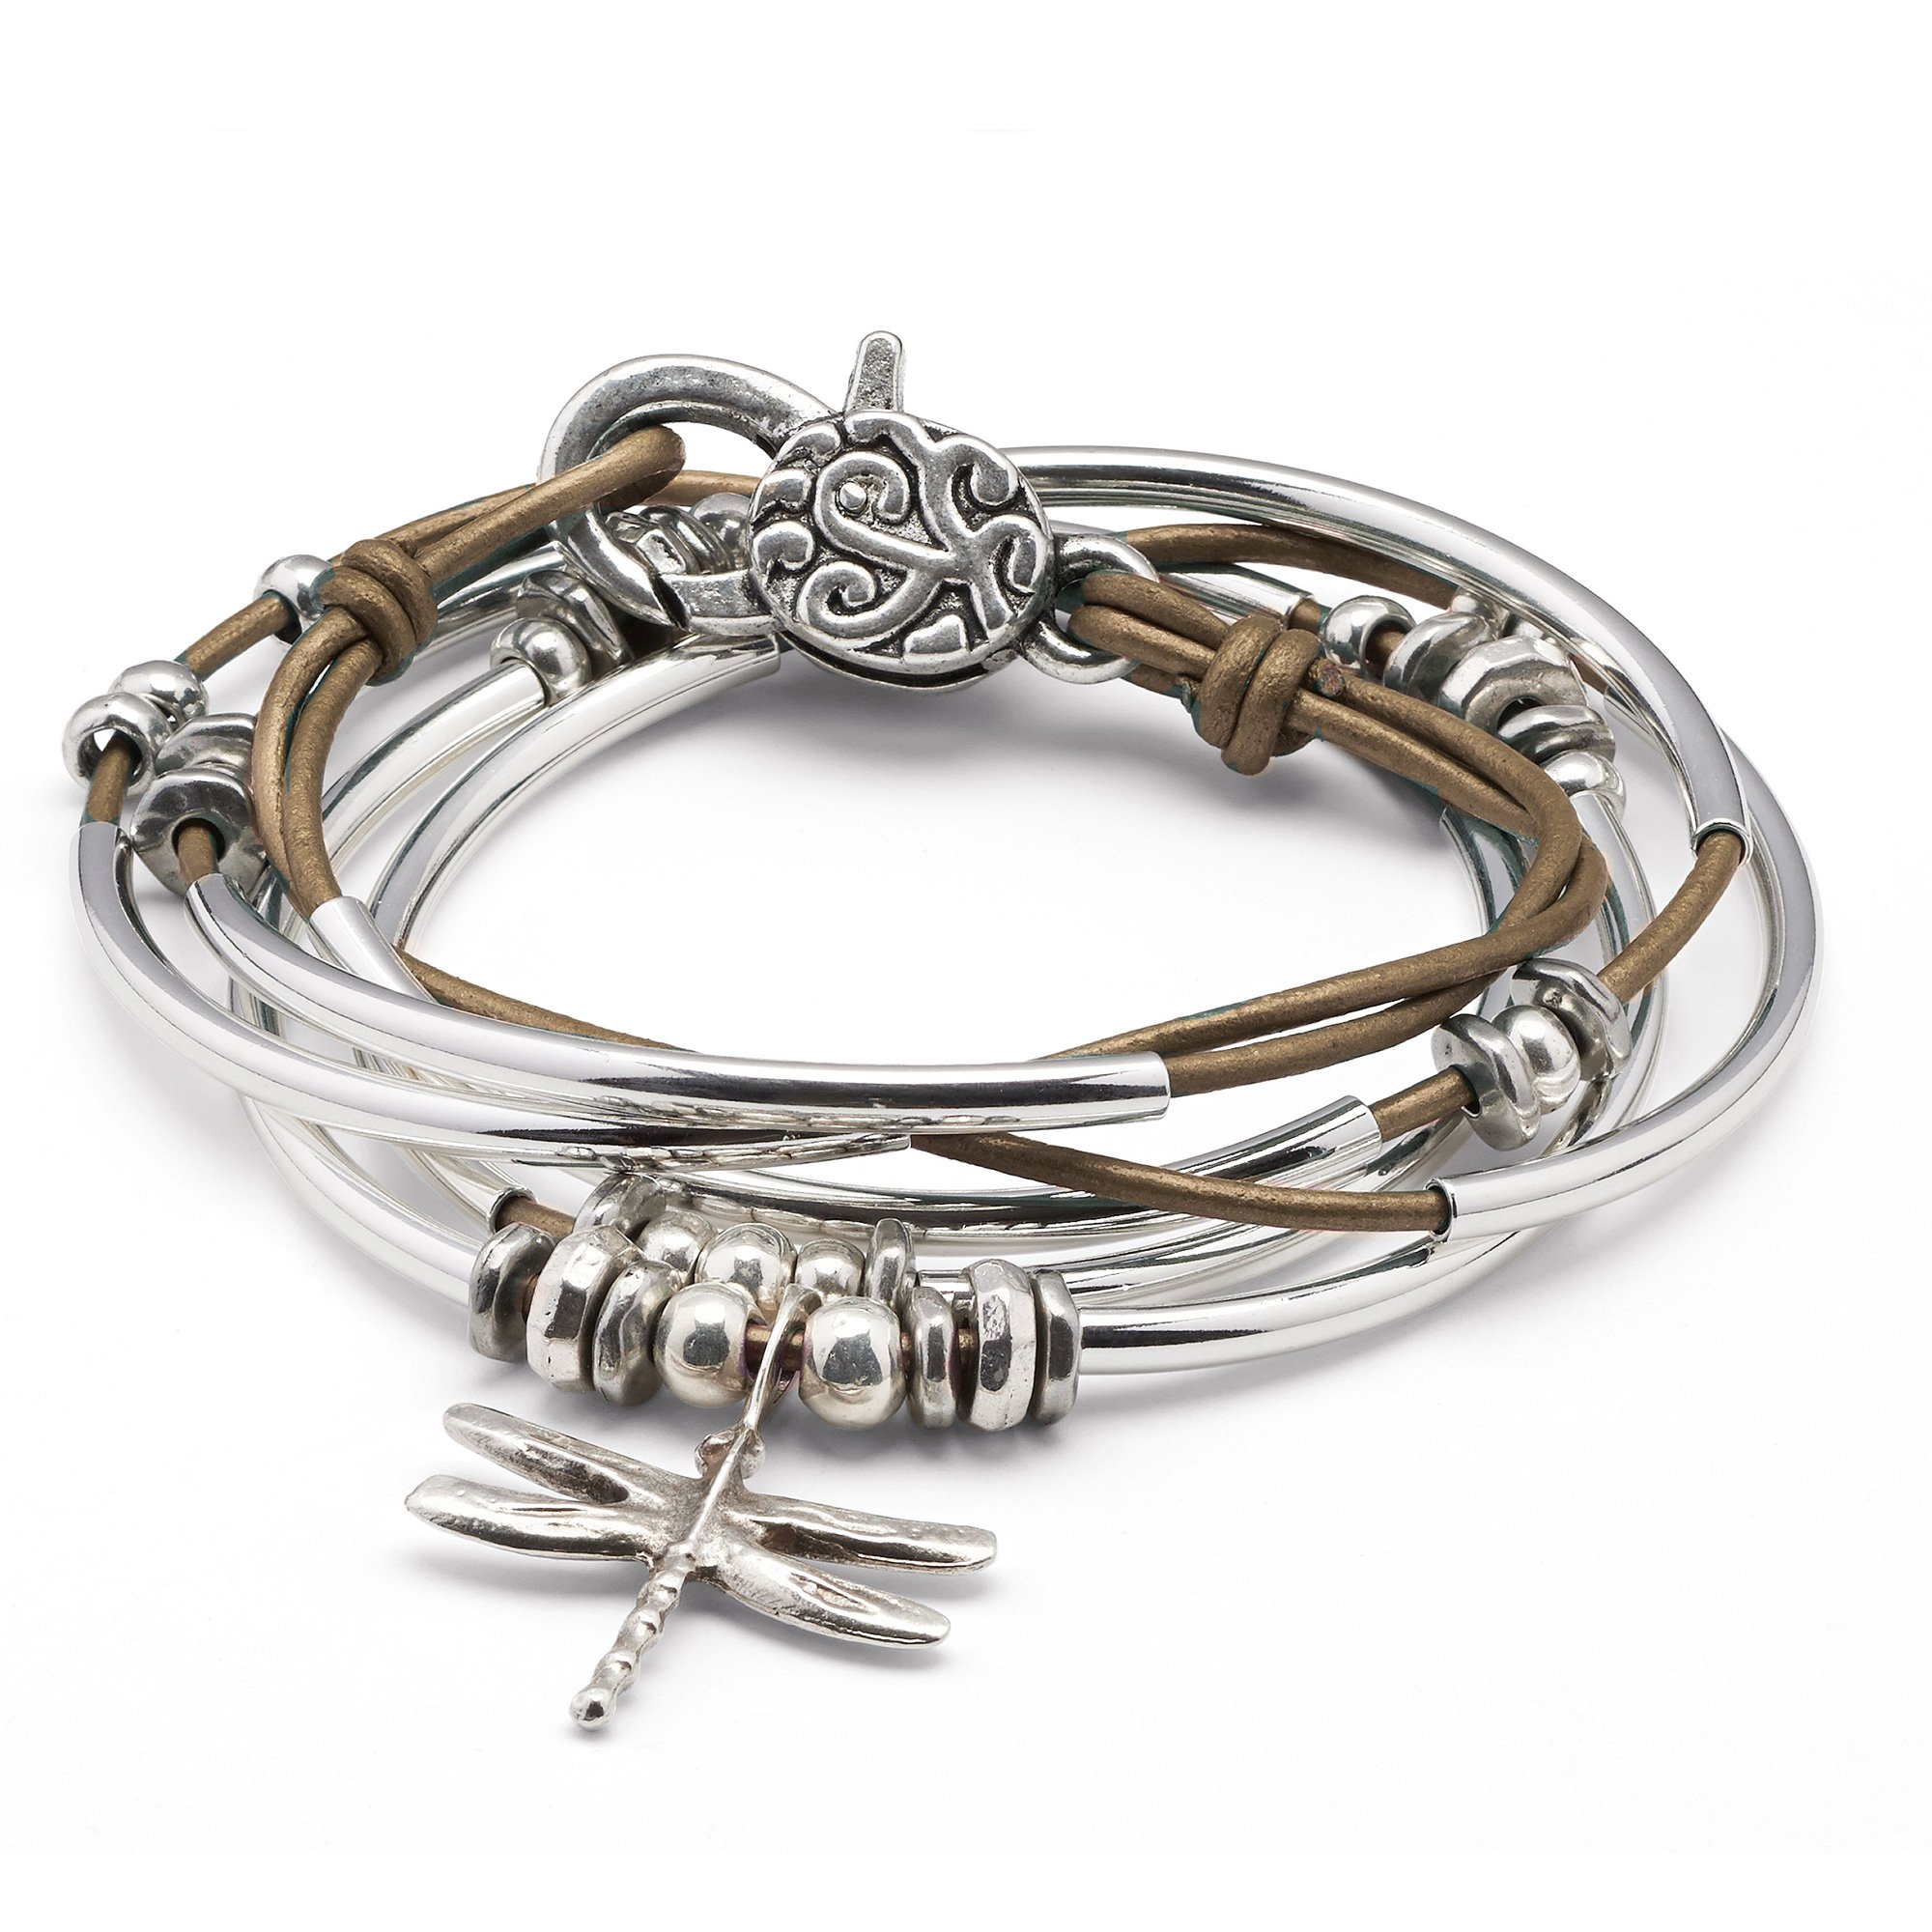 Lizzy James Dragonfly Charm Metallic Bronze Leather Wrap Bracelet Necklace in Silver Plate (Petite)